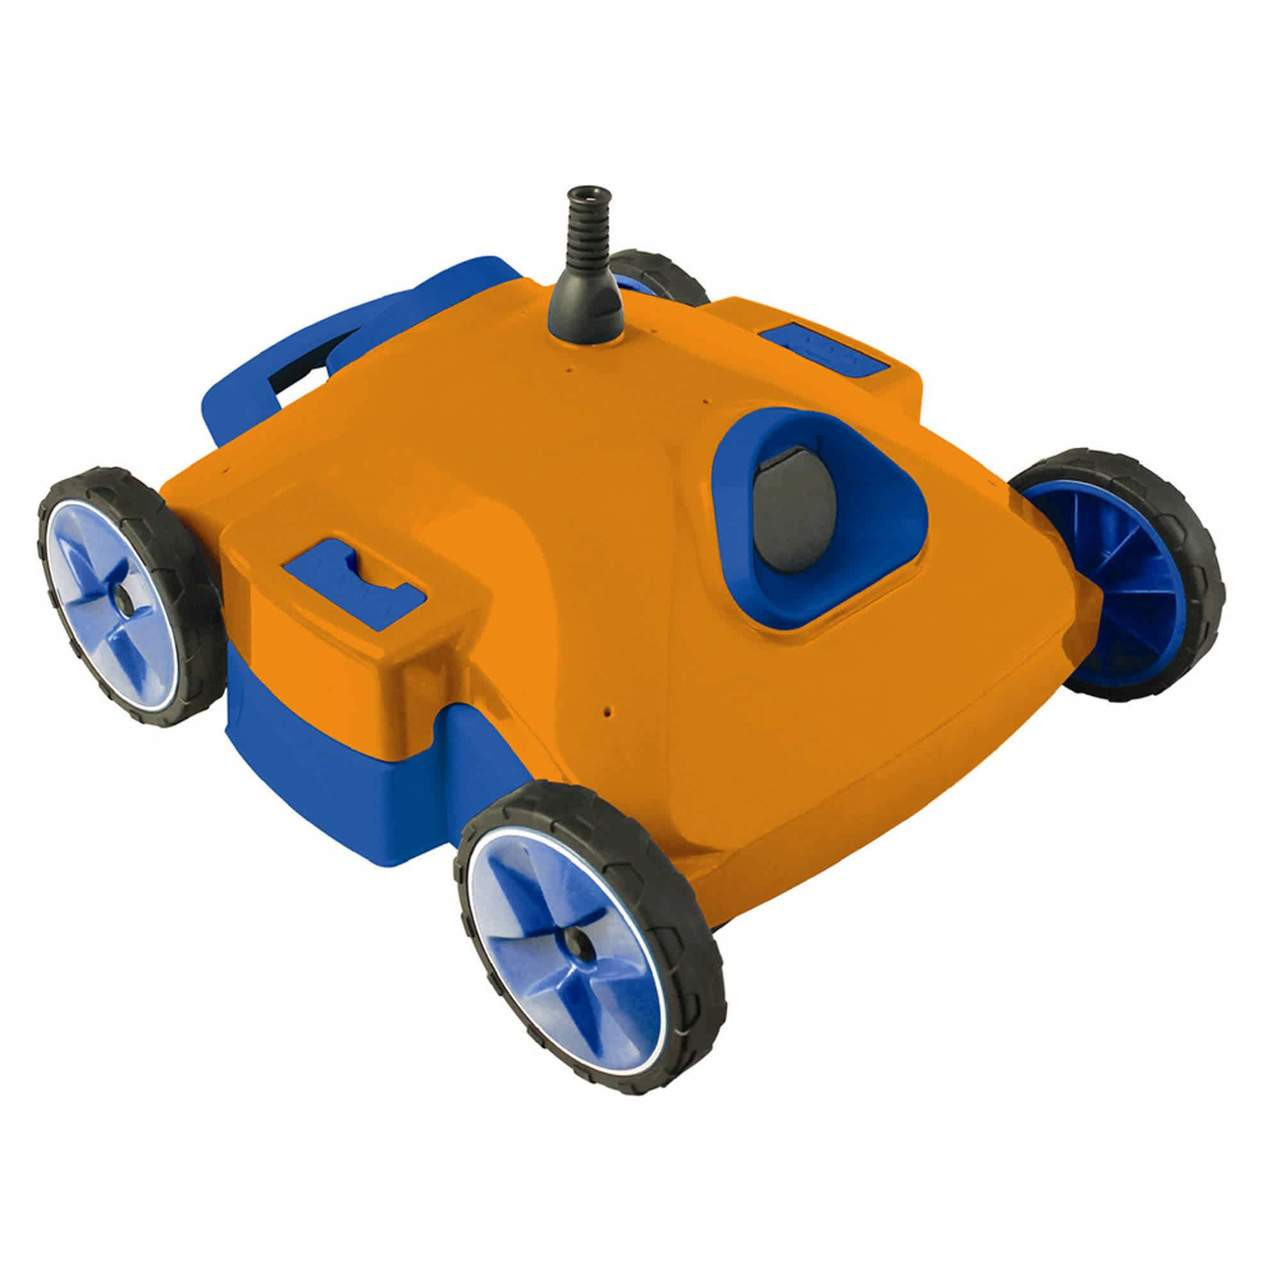 Aquafirst Super Rover Robotic Pool Cleaner For Inground & Above Ground Pools